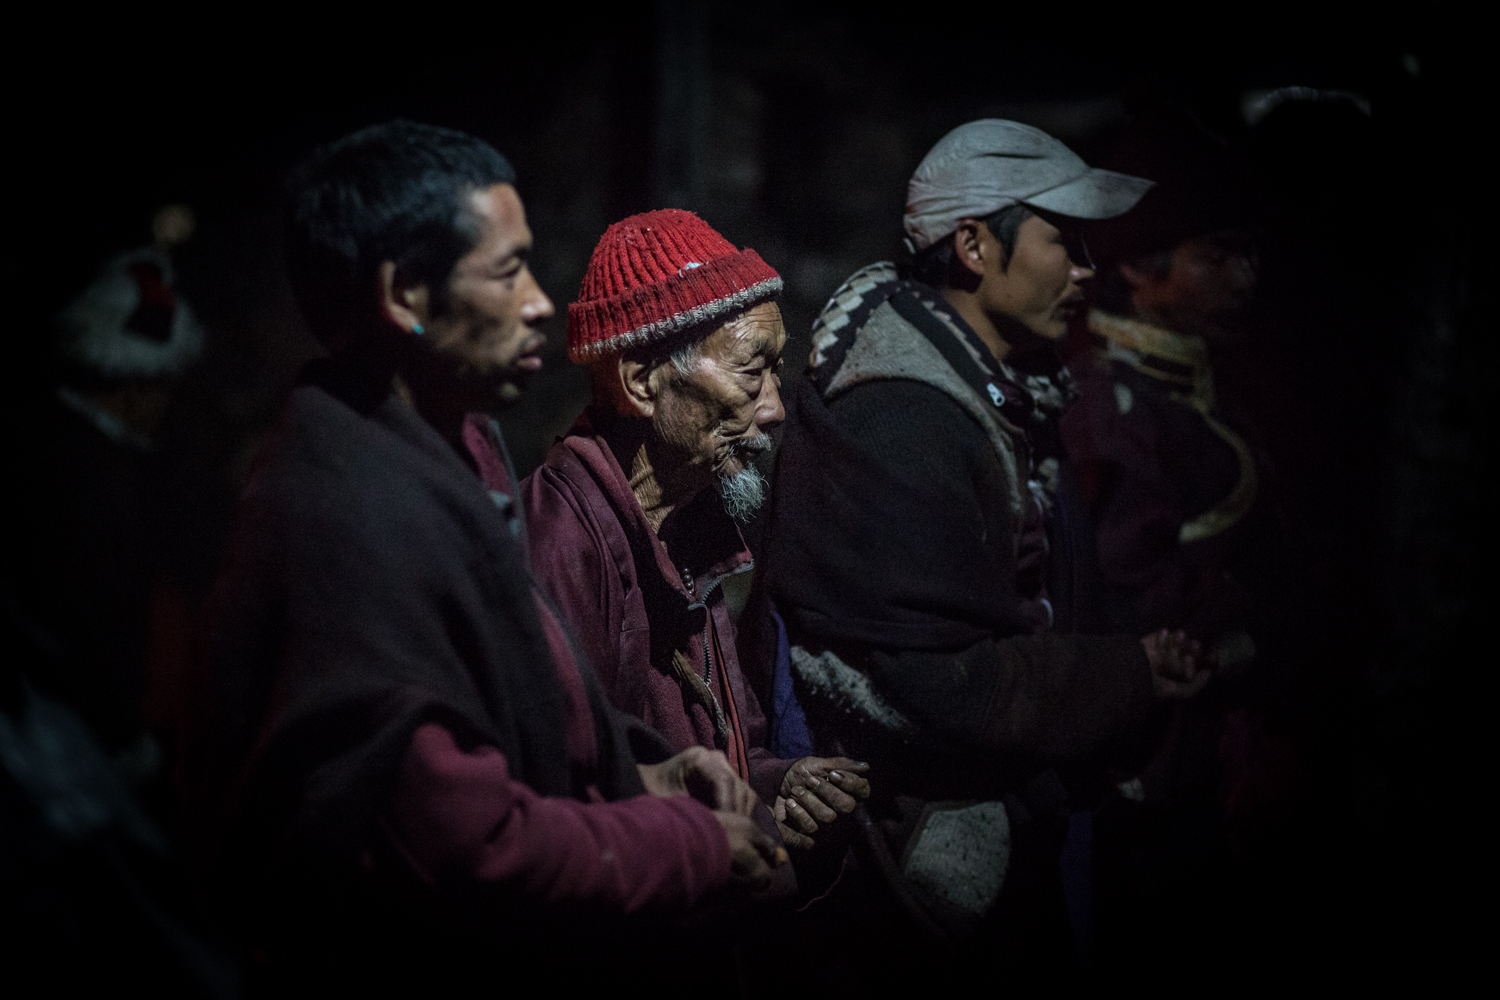 Villagers in Namrung watch a performance but on by local monks. Namei dum je is held annually by the local monastery. Lamas pray and put on performances to earn donations from the townspeoples.